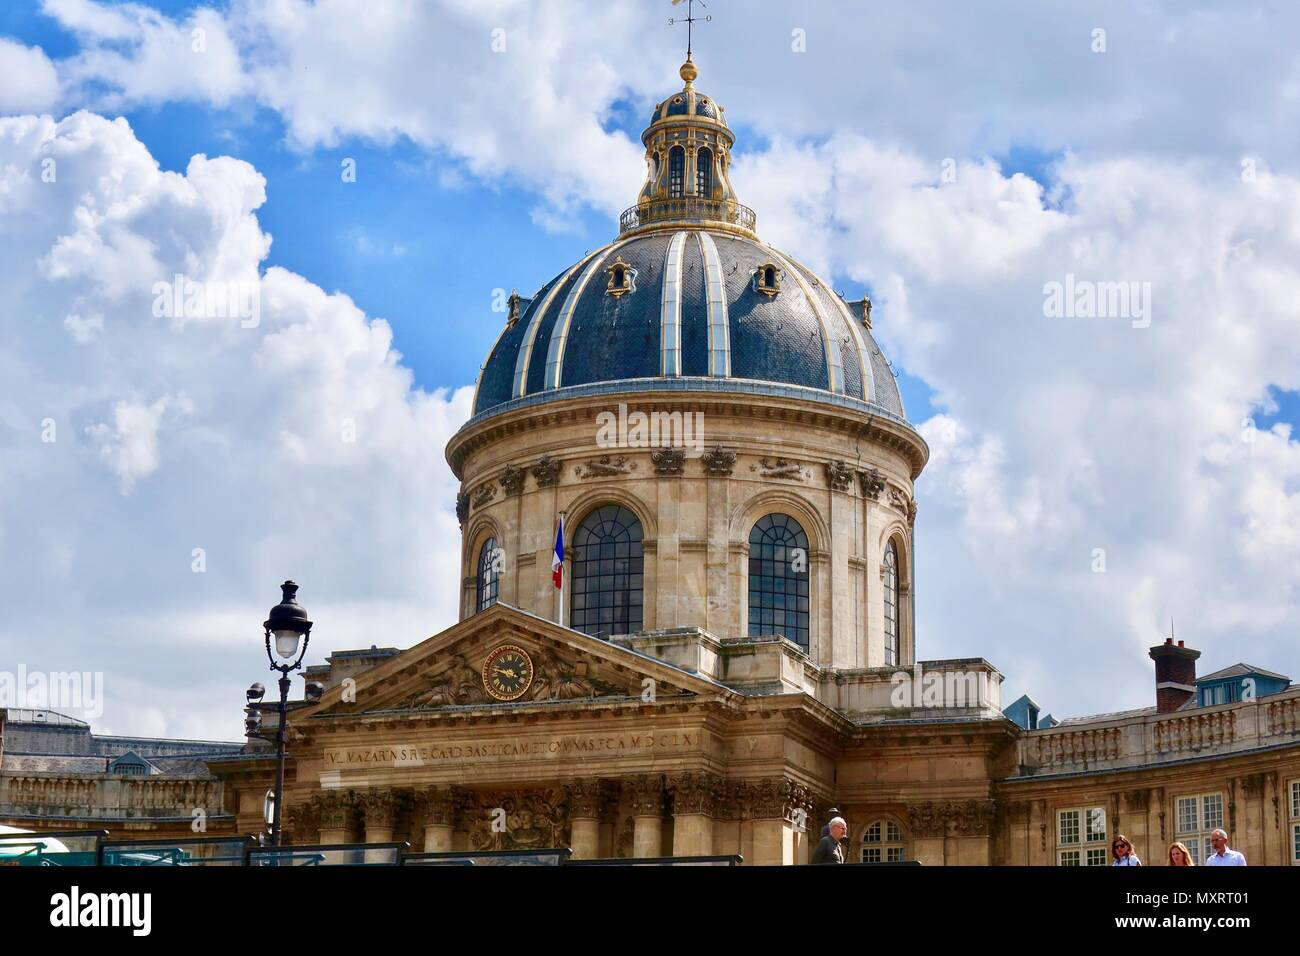 Paris, France. Hot bright sunny spring day at the Academie des Beaux Arts, Institute de France. May 2018. Stock Photo